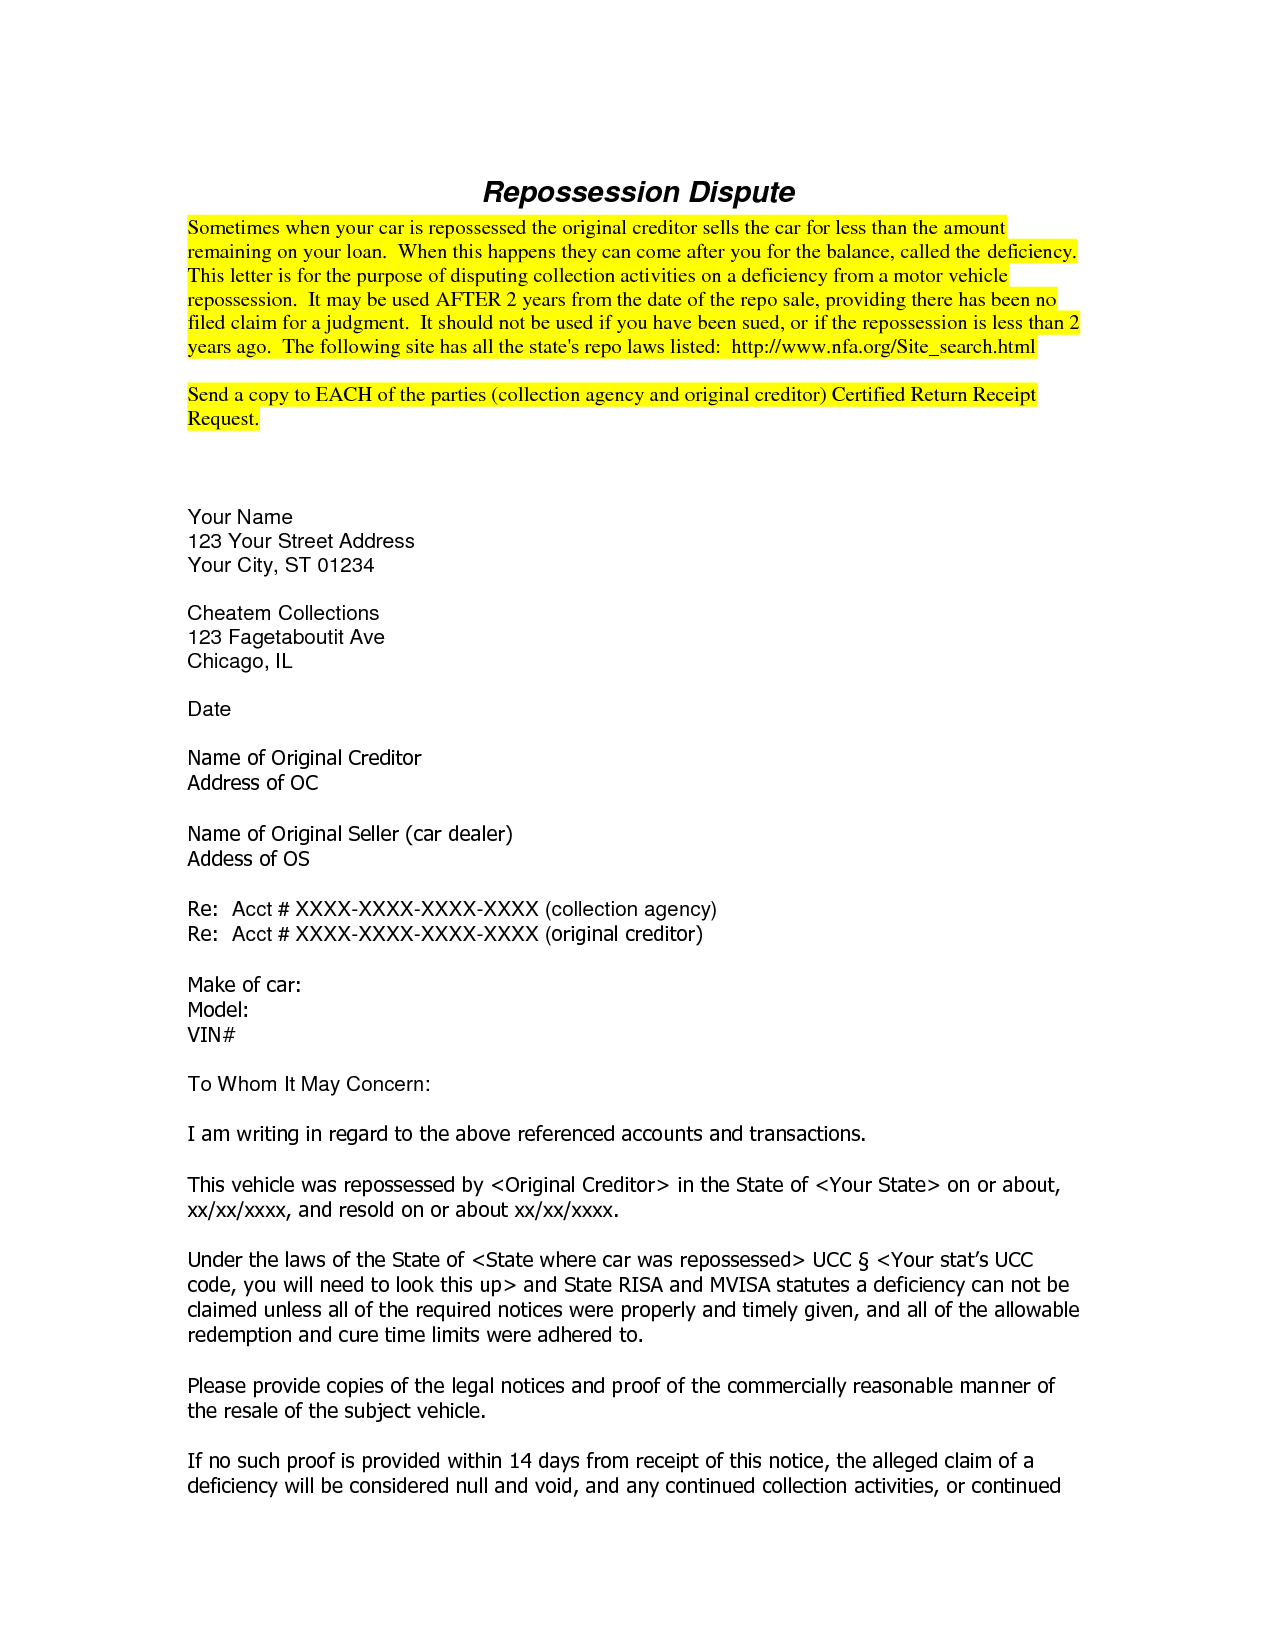 Repossession Dispute Letter Template - Free Cover Letter Templates Repossession Dispute Letter